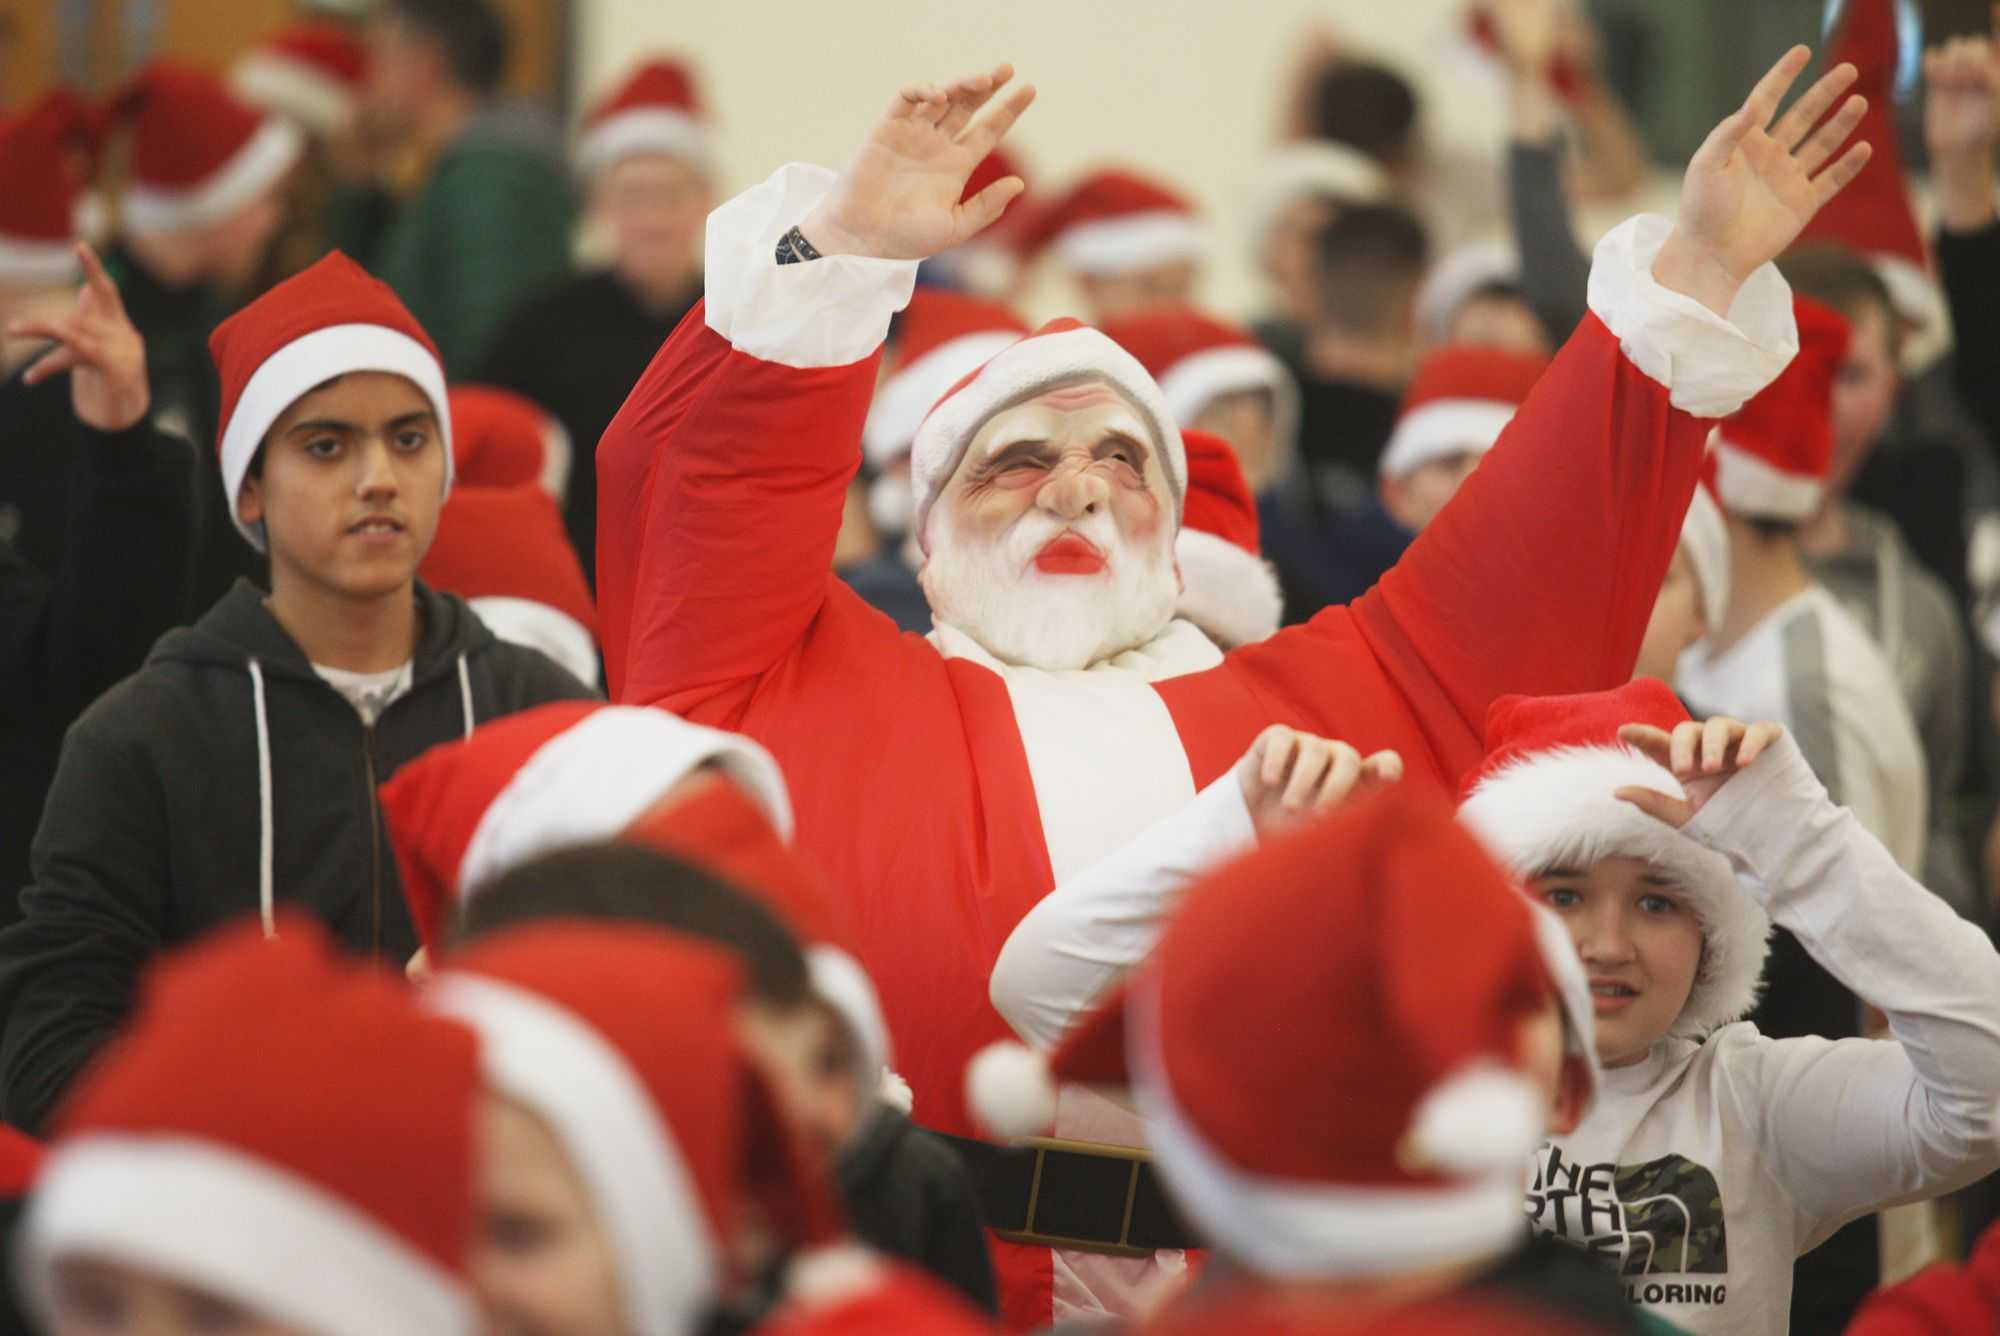 SANTA CLAUS: Every country, tribe and people has cultural myths and icons